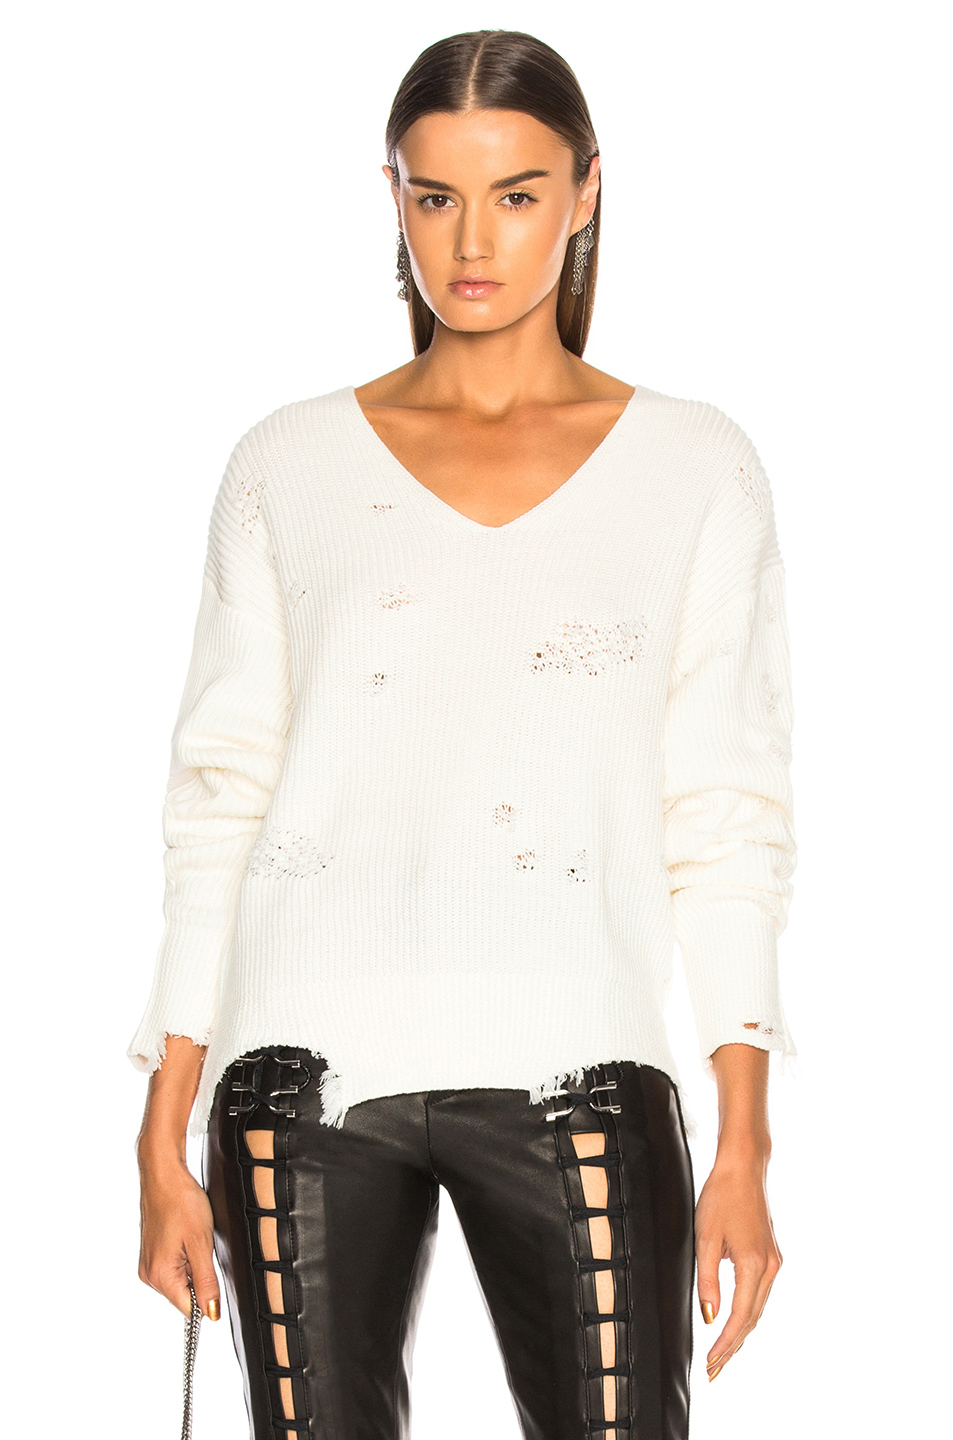 a882eb6aa1ee1 Buy Original Helmut Lang Distressed Longsleeve V Neck Sweater at ...